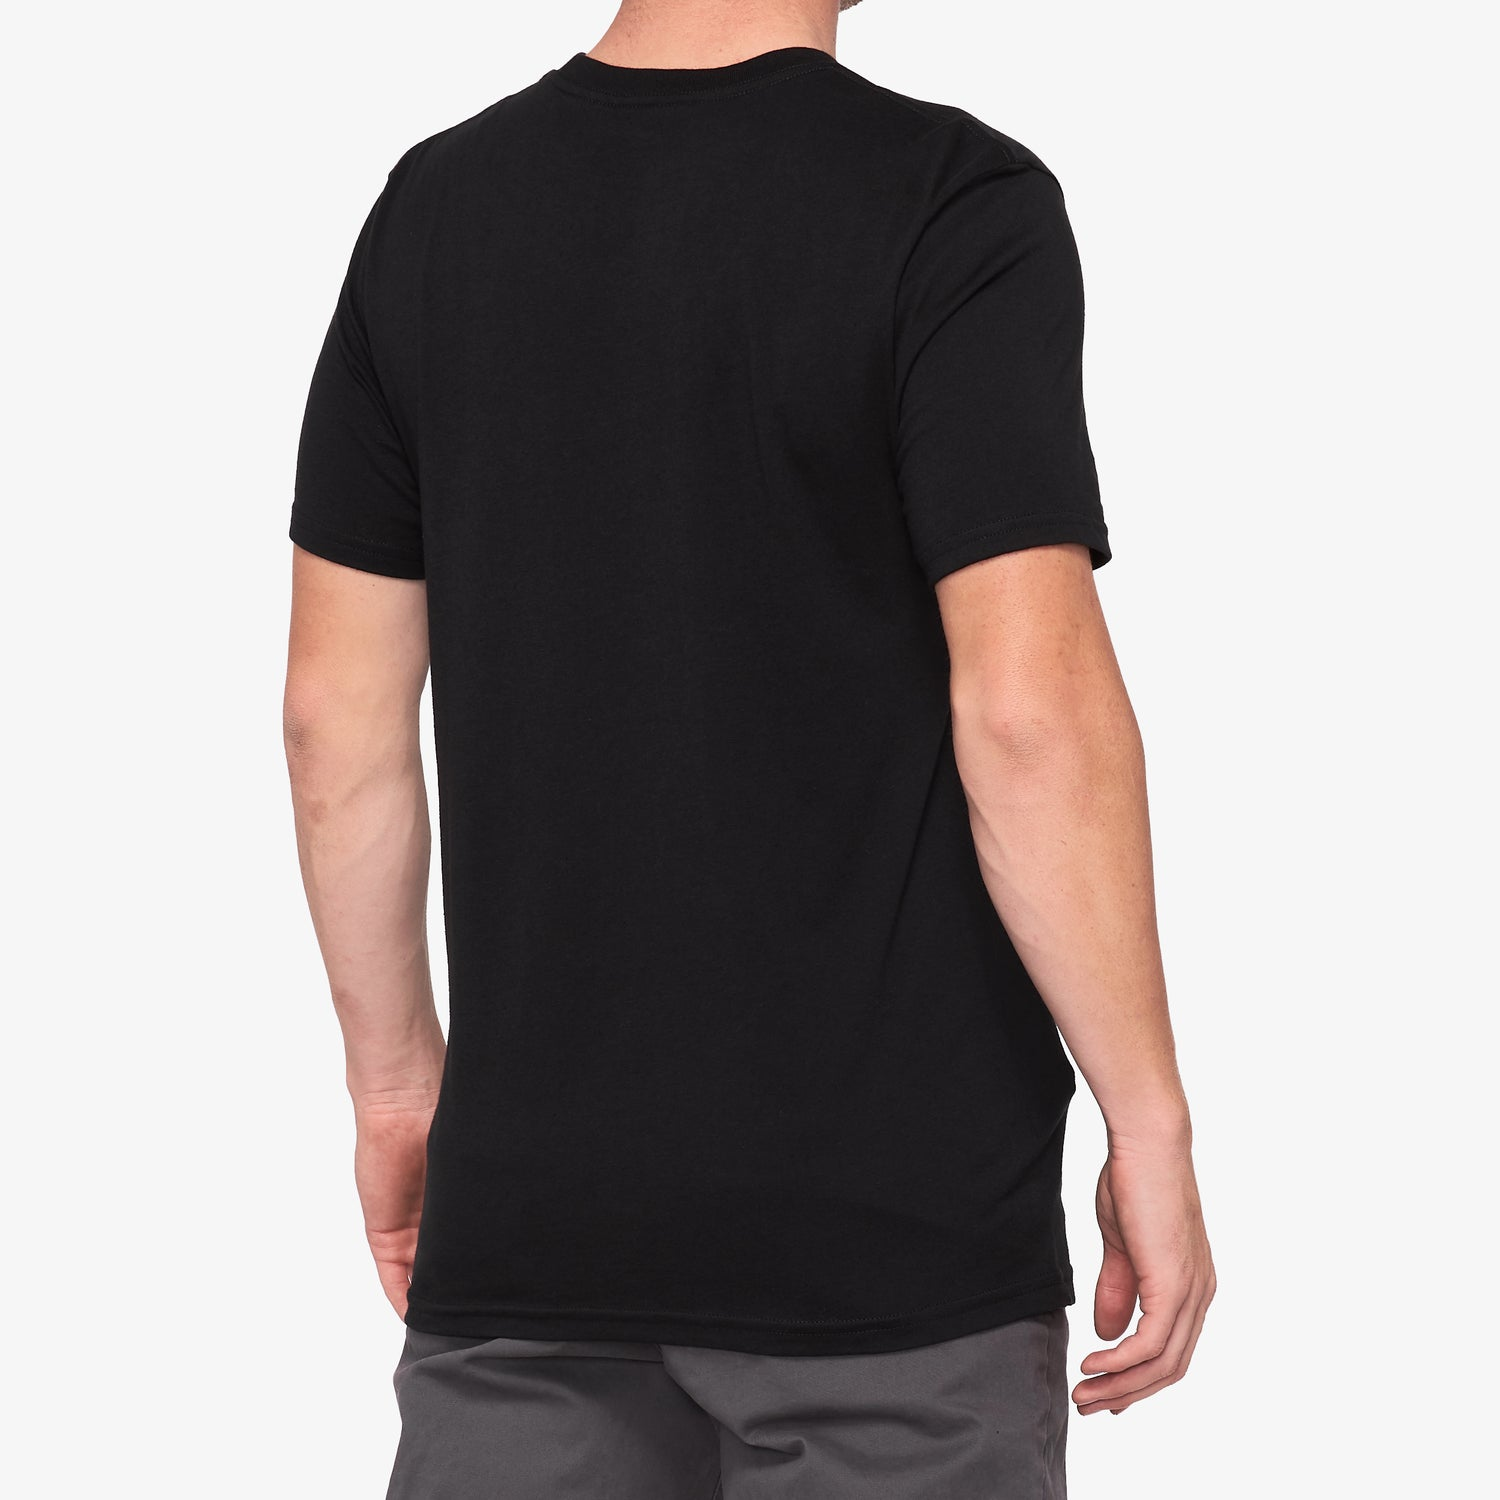 OFFICIAL T-Shirt - Black